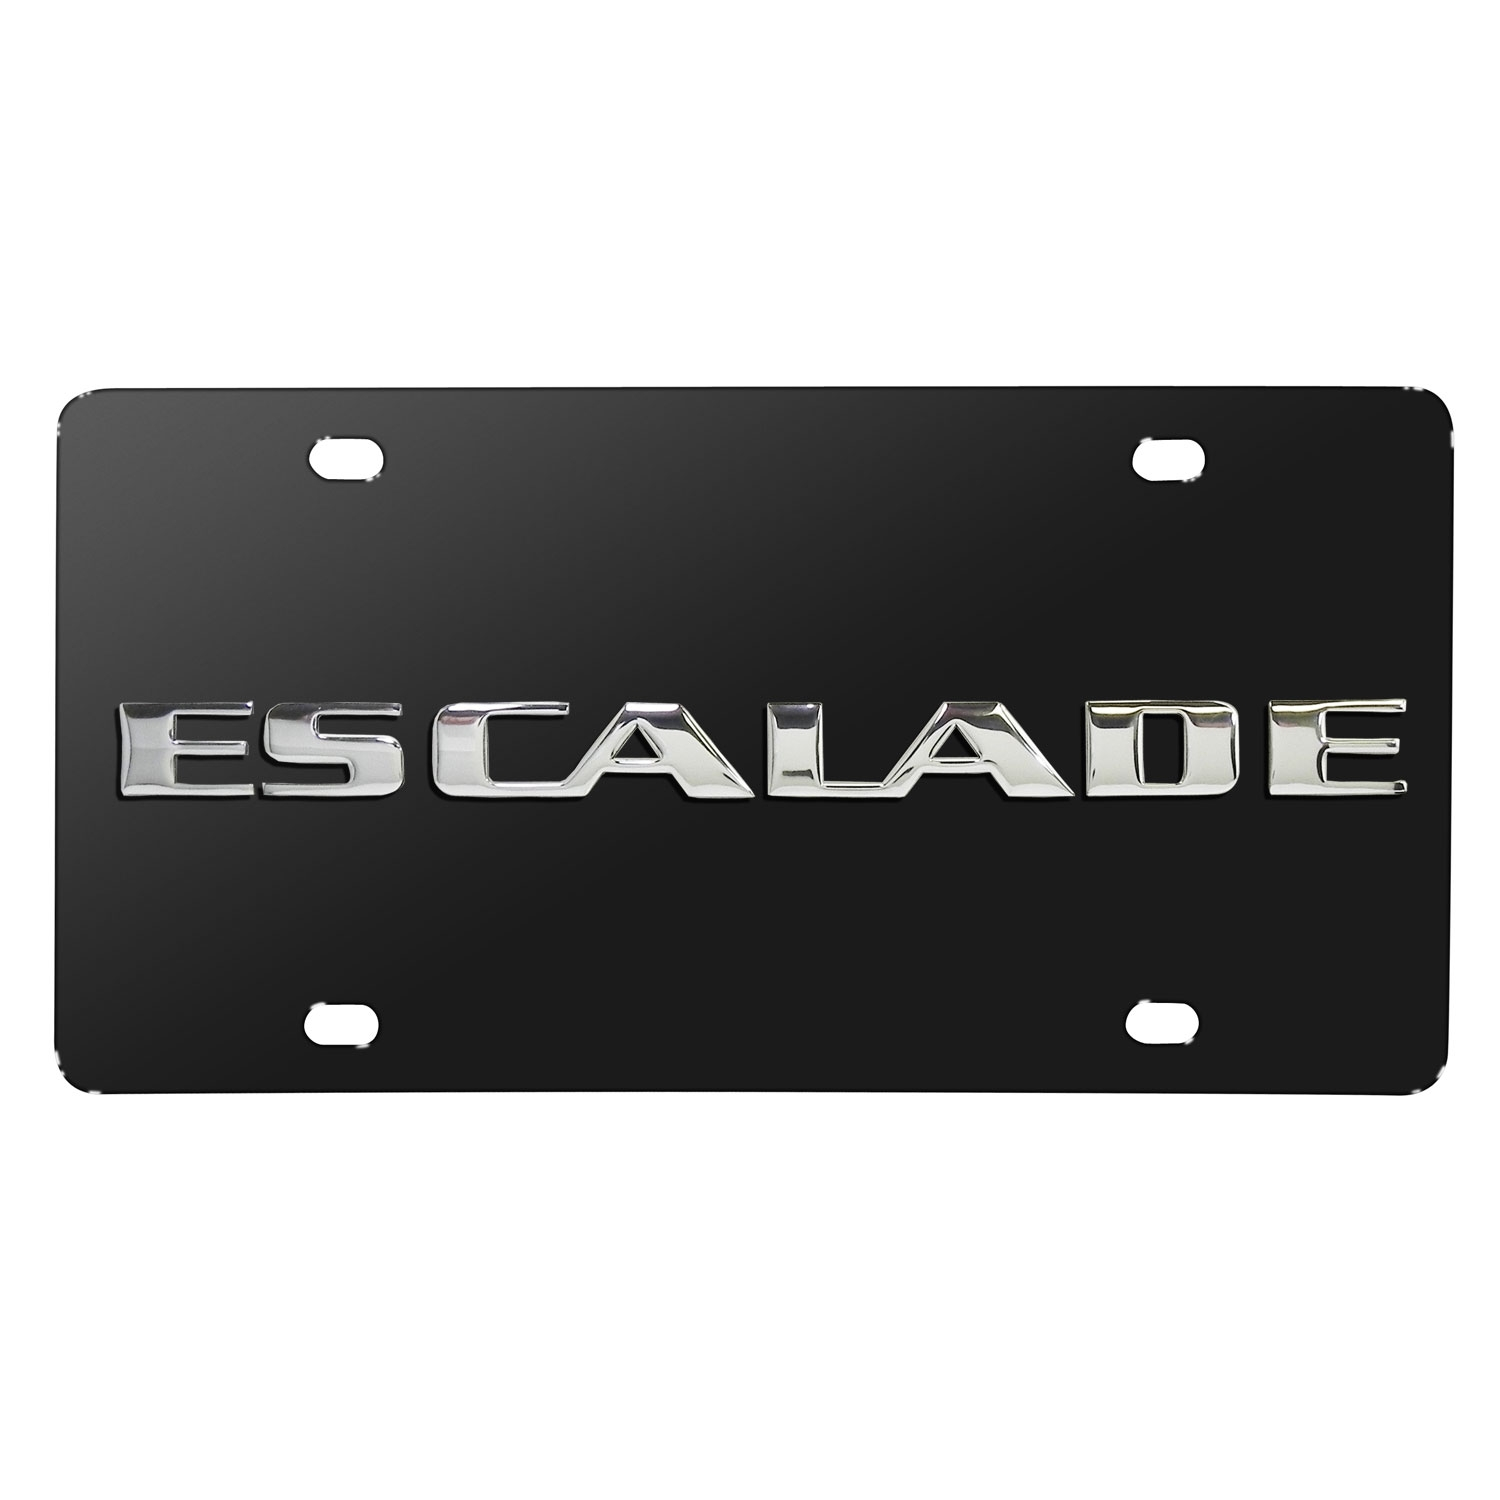 Cadillac Escalade Name 3D Logo Black Stainless Steel License Plate